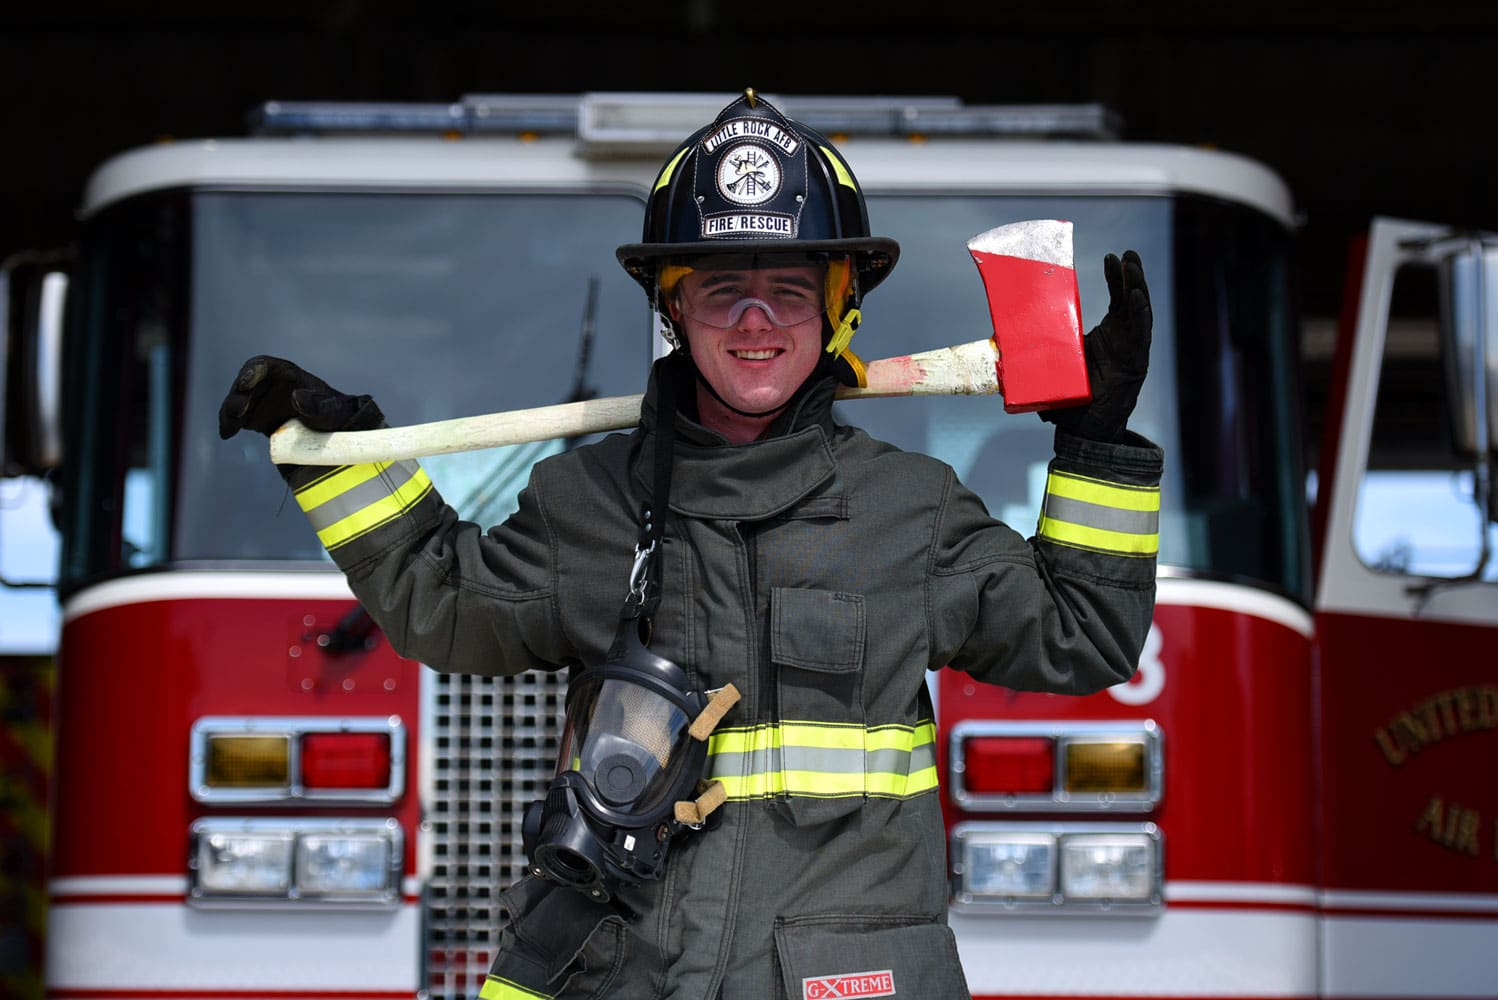 U.S. Air Force Airman 1st Class Zakary Smith, 19th Civil Engineer Squadron Fire Department firefighter, wields an axe at Little Rock Air Force Base, Ark. Firefighters must work together to perform their duties and keep the base populace safe during any emergency.